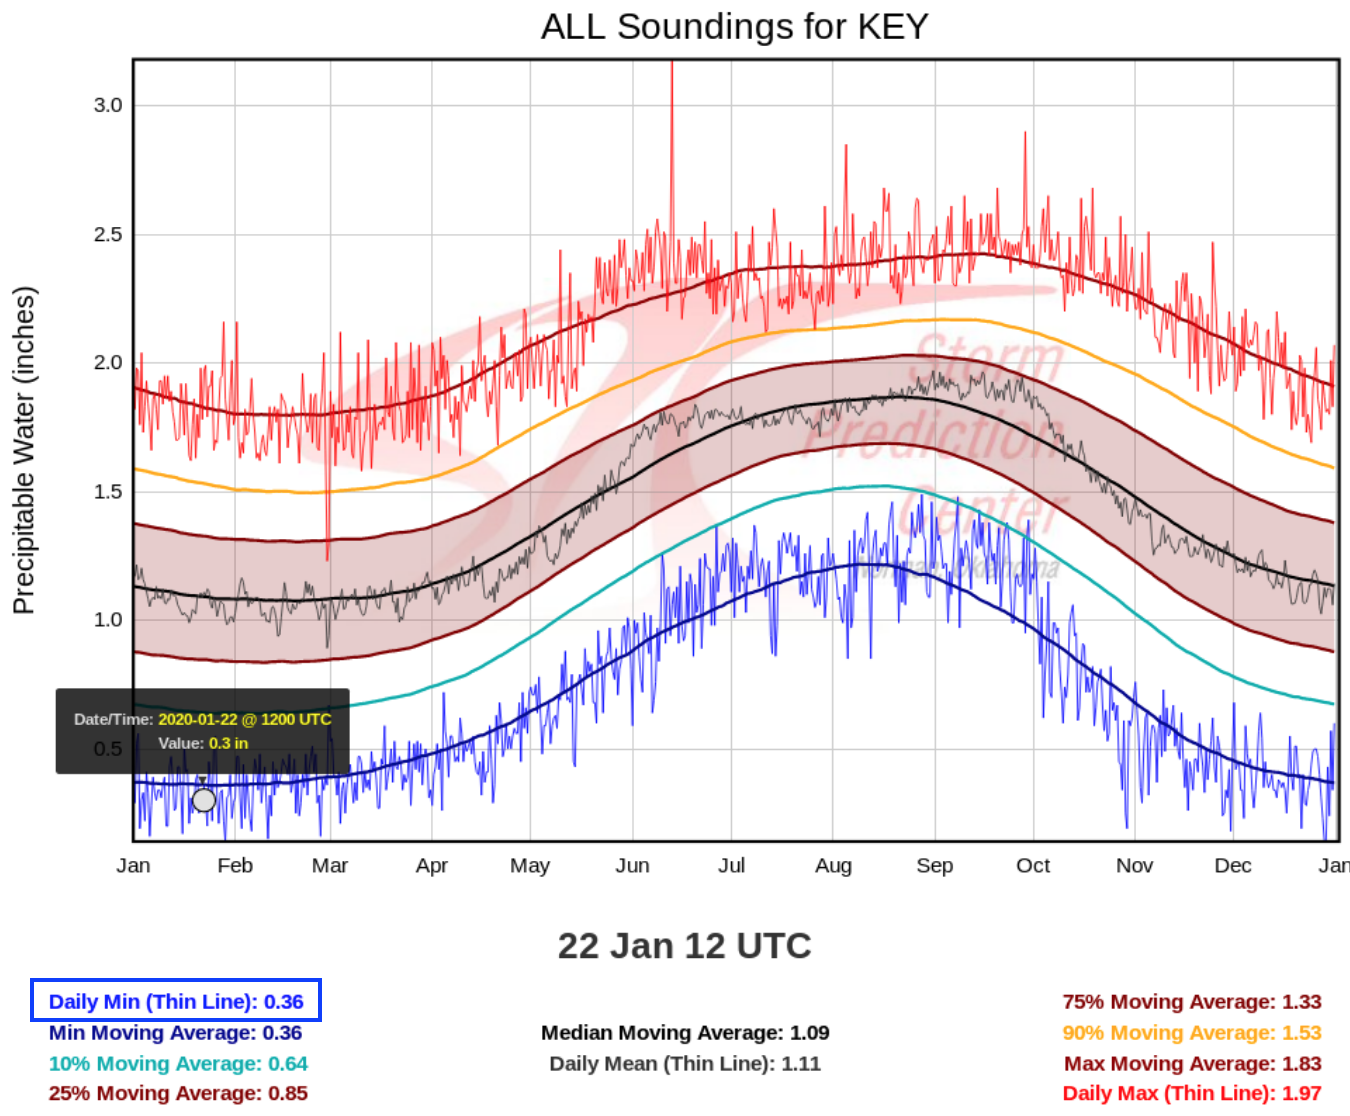 Climatology of Total Precipitable Water for the Key West, Florida rawinsonde site [click to enlarge]